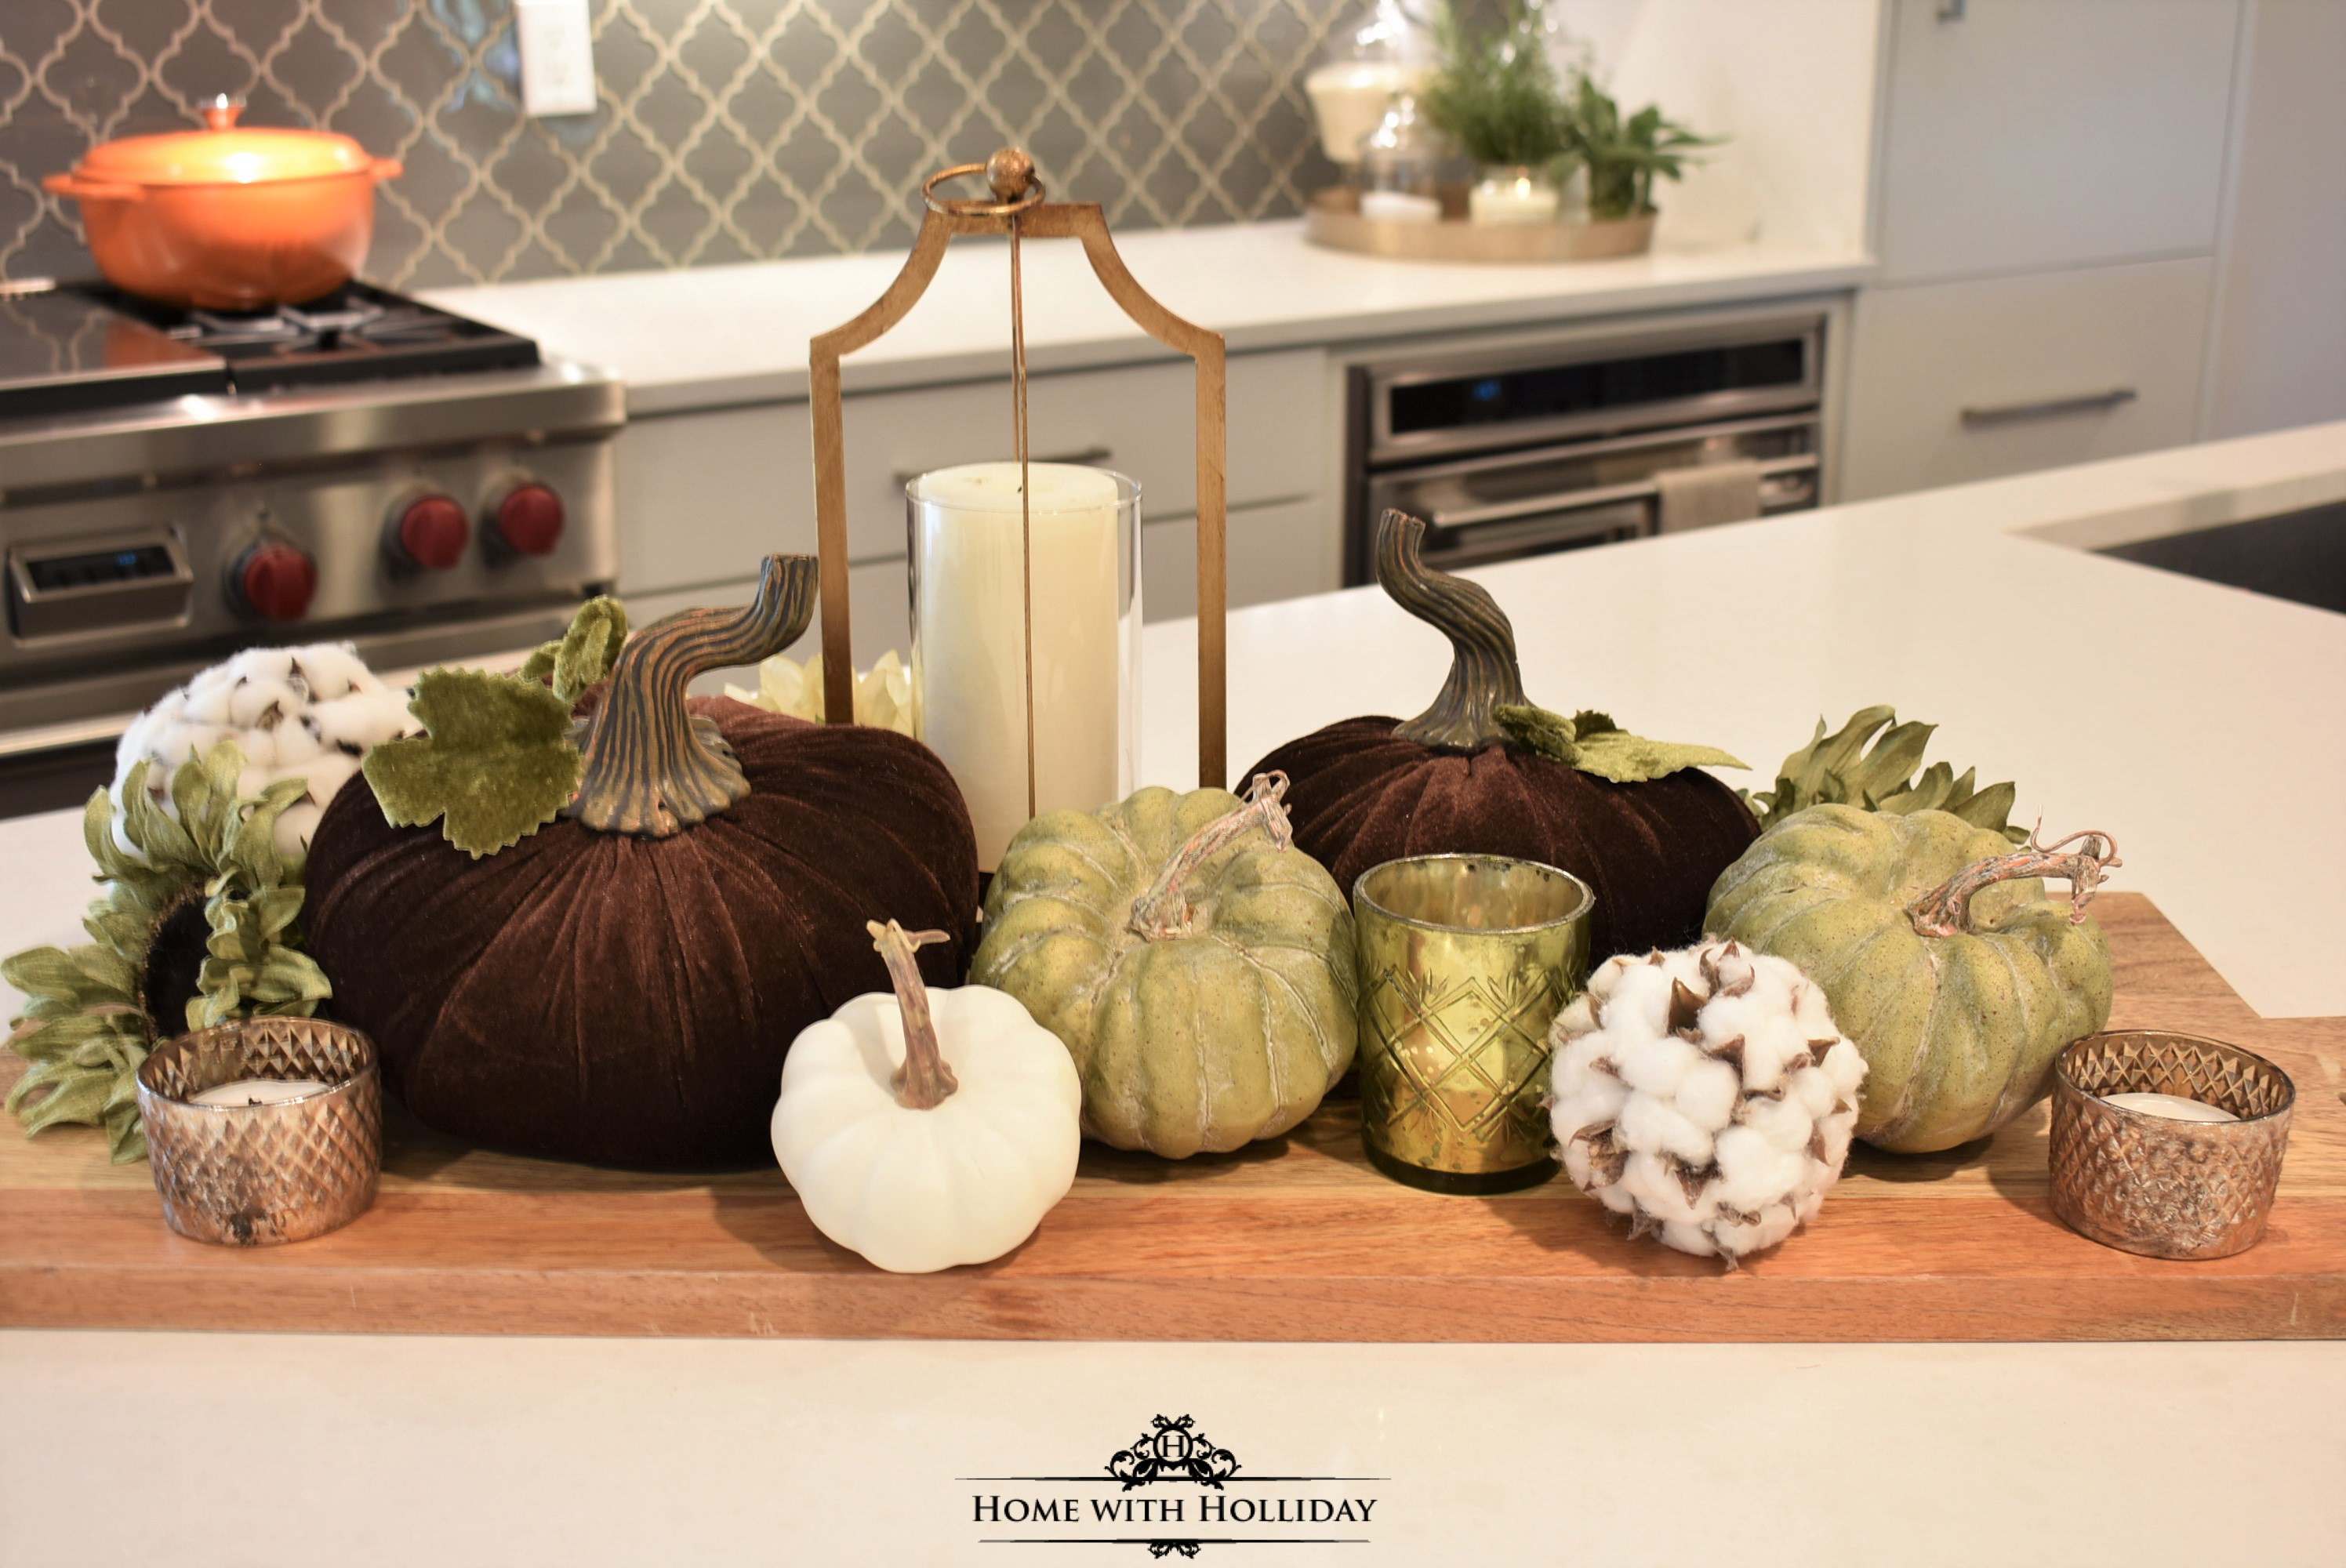 How to created a Fall Vignette with Velvet Pumpkins